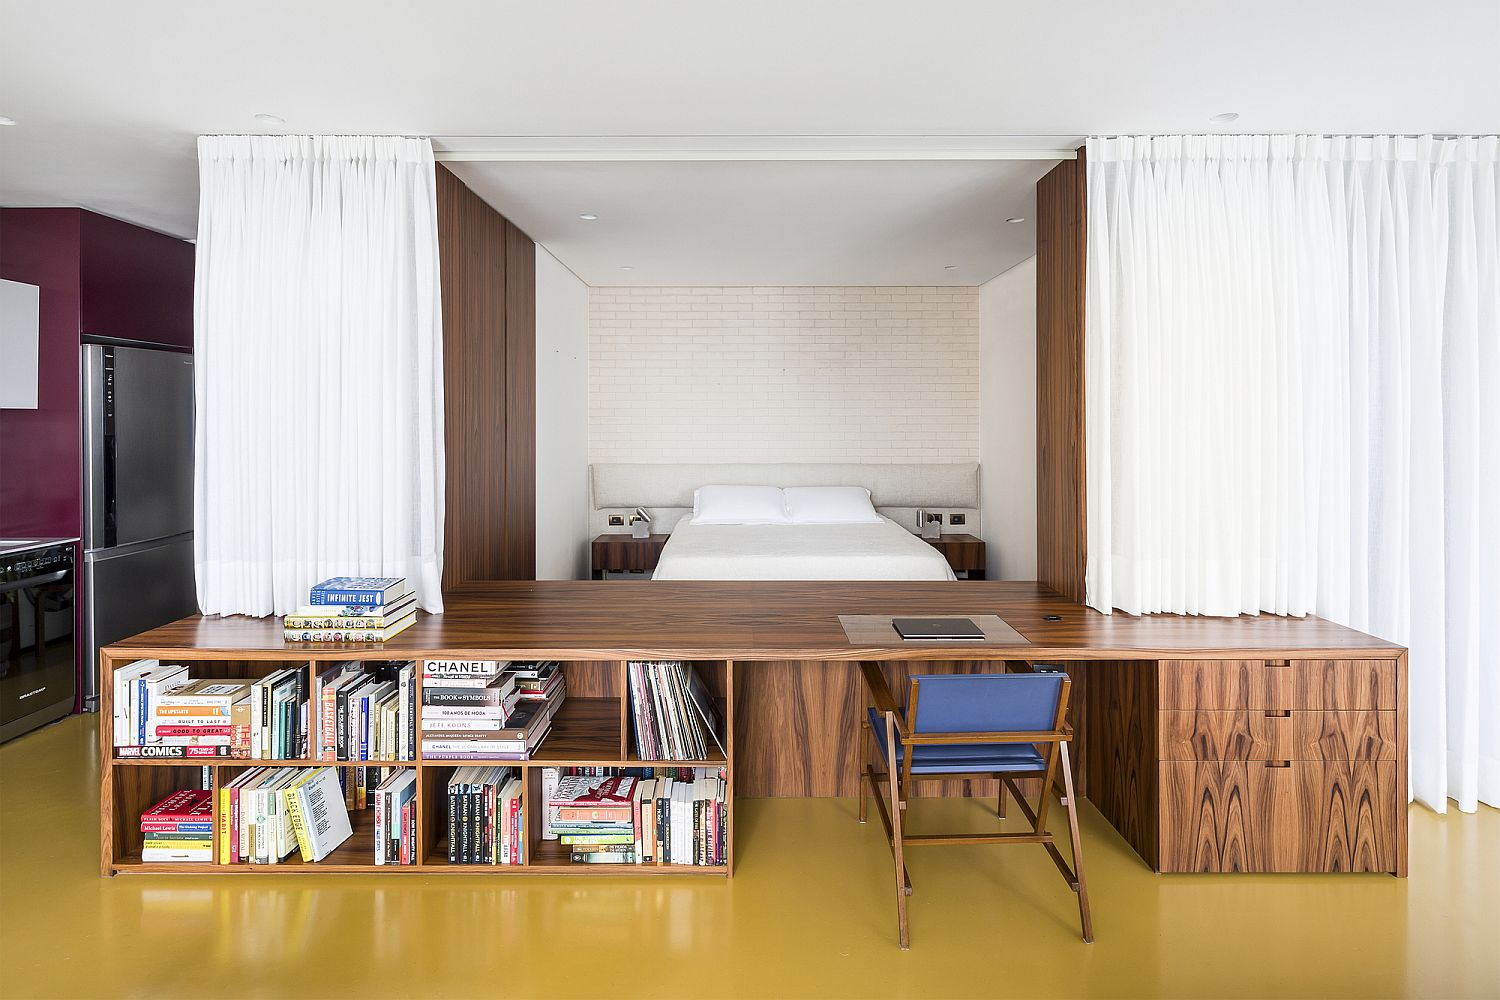 White curtains hide the wooden box entirely when needed